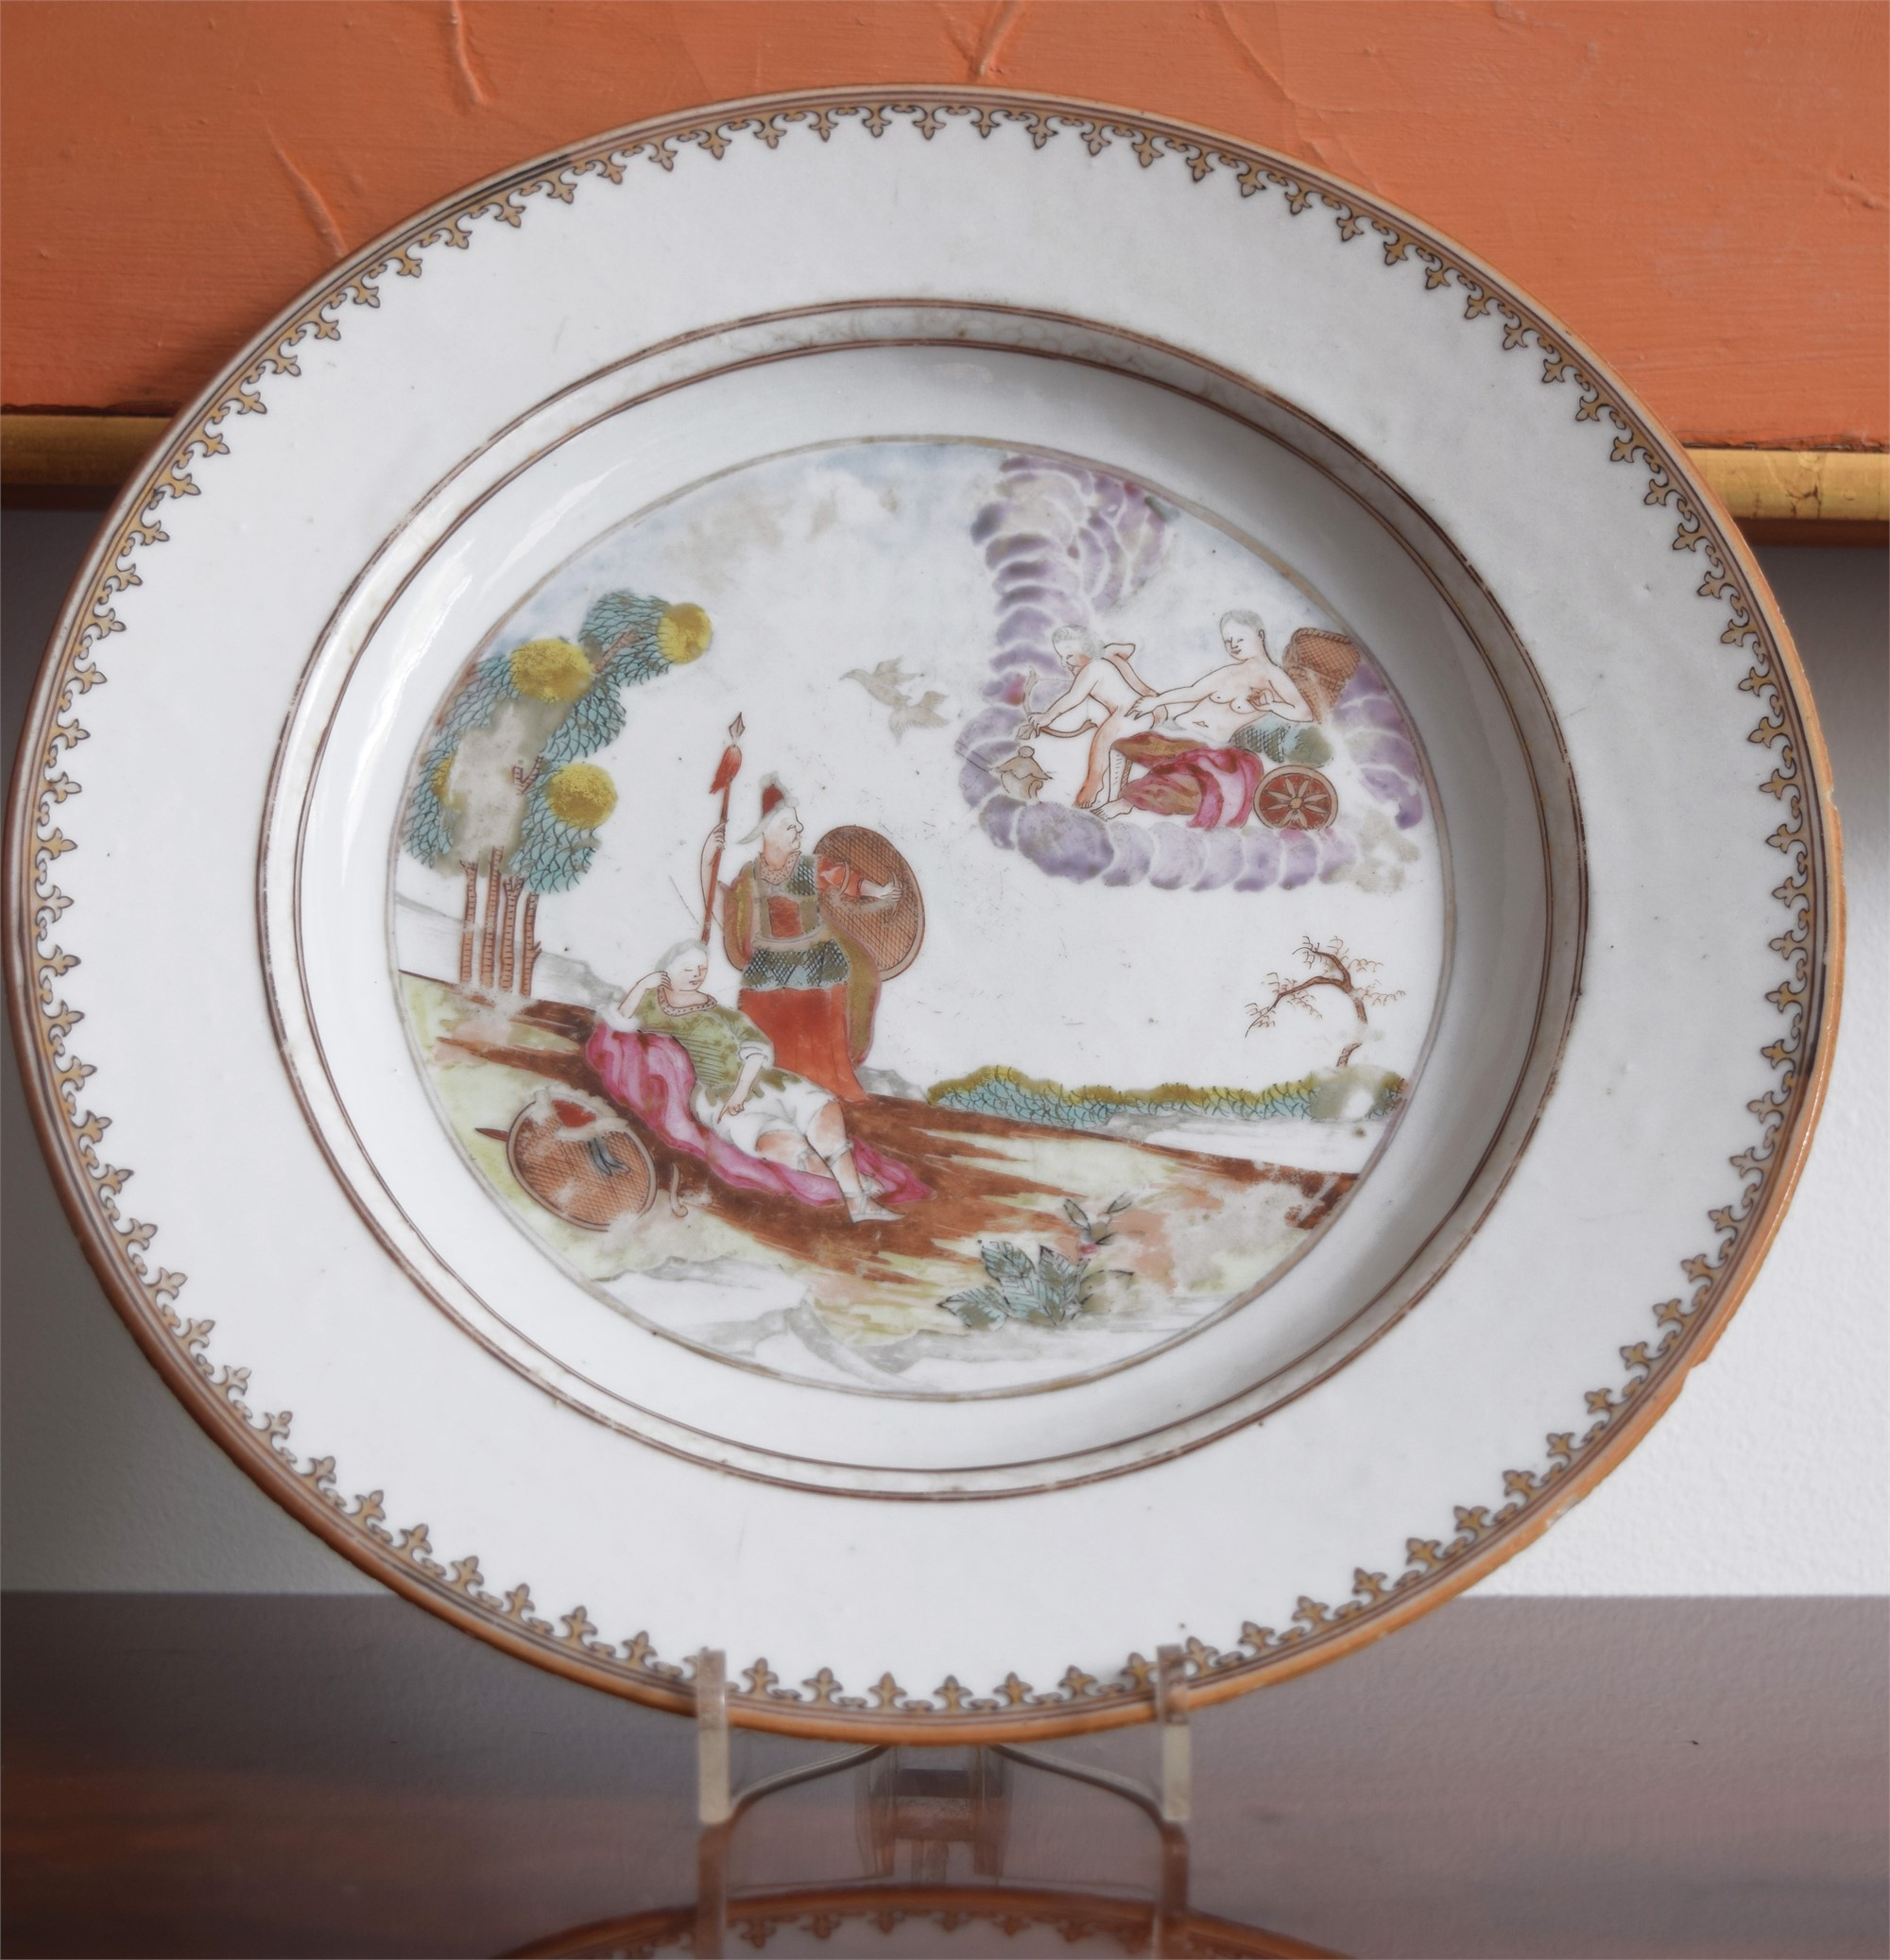 AN EXPORT PLATE WITH MYTHOLOGICAL SCENE OF VENUS IN HER CHARIOT SURROUNDED BY CLOUDS